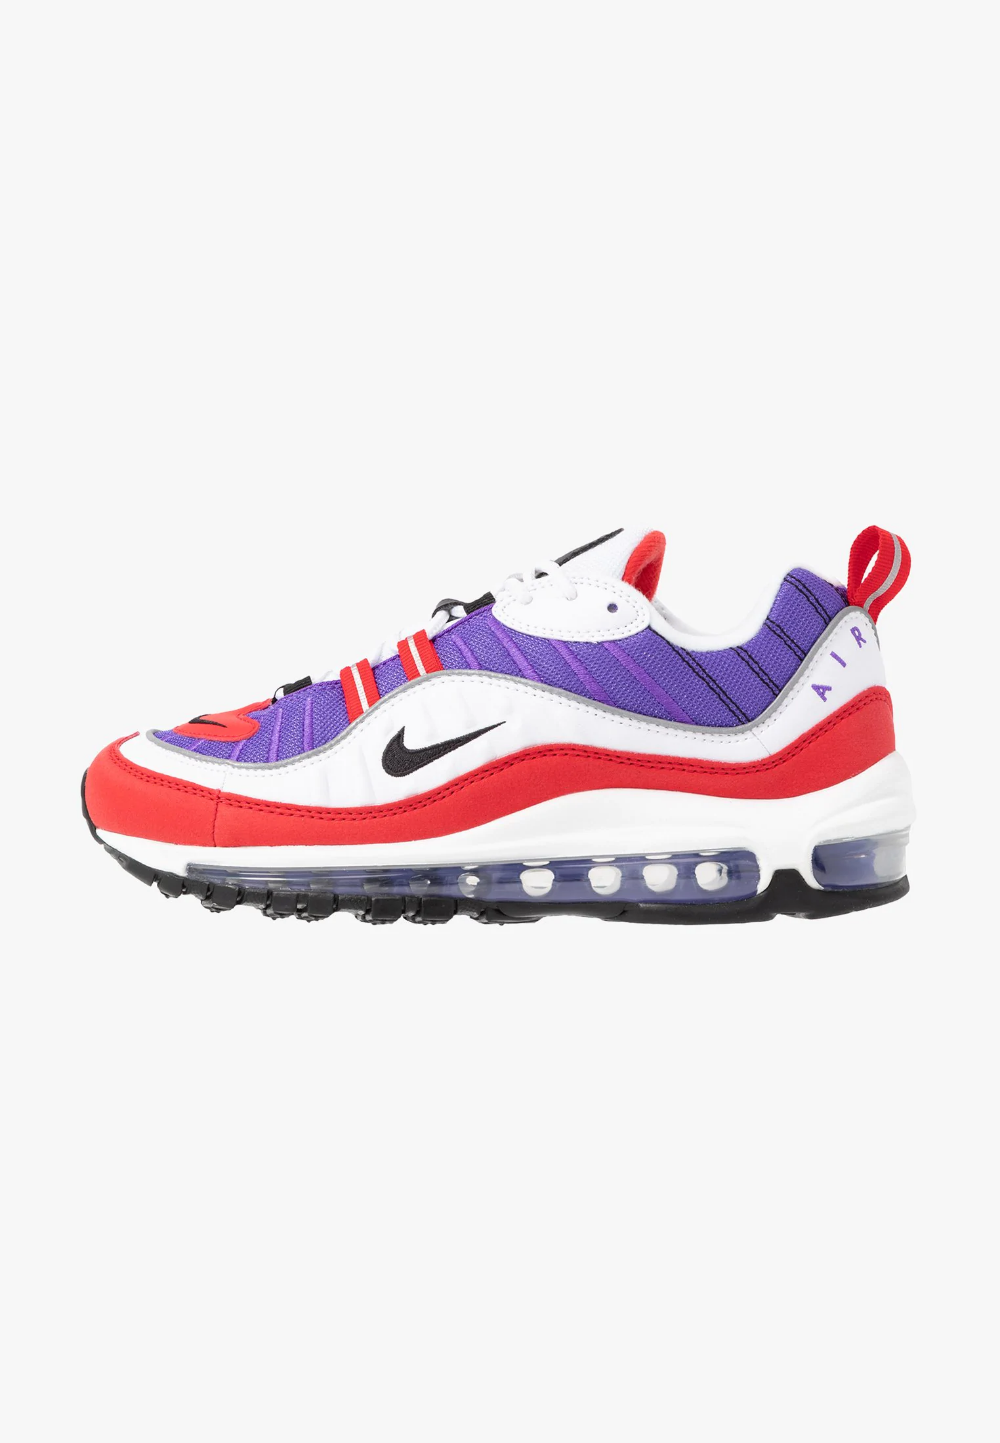 1 MONTH AFTER WEARING: NIKE AIR MAX 720 WORTH BUYING? PROS AND CONS